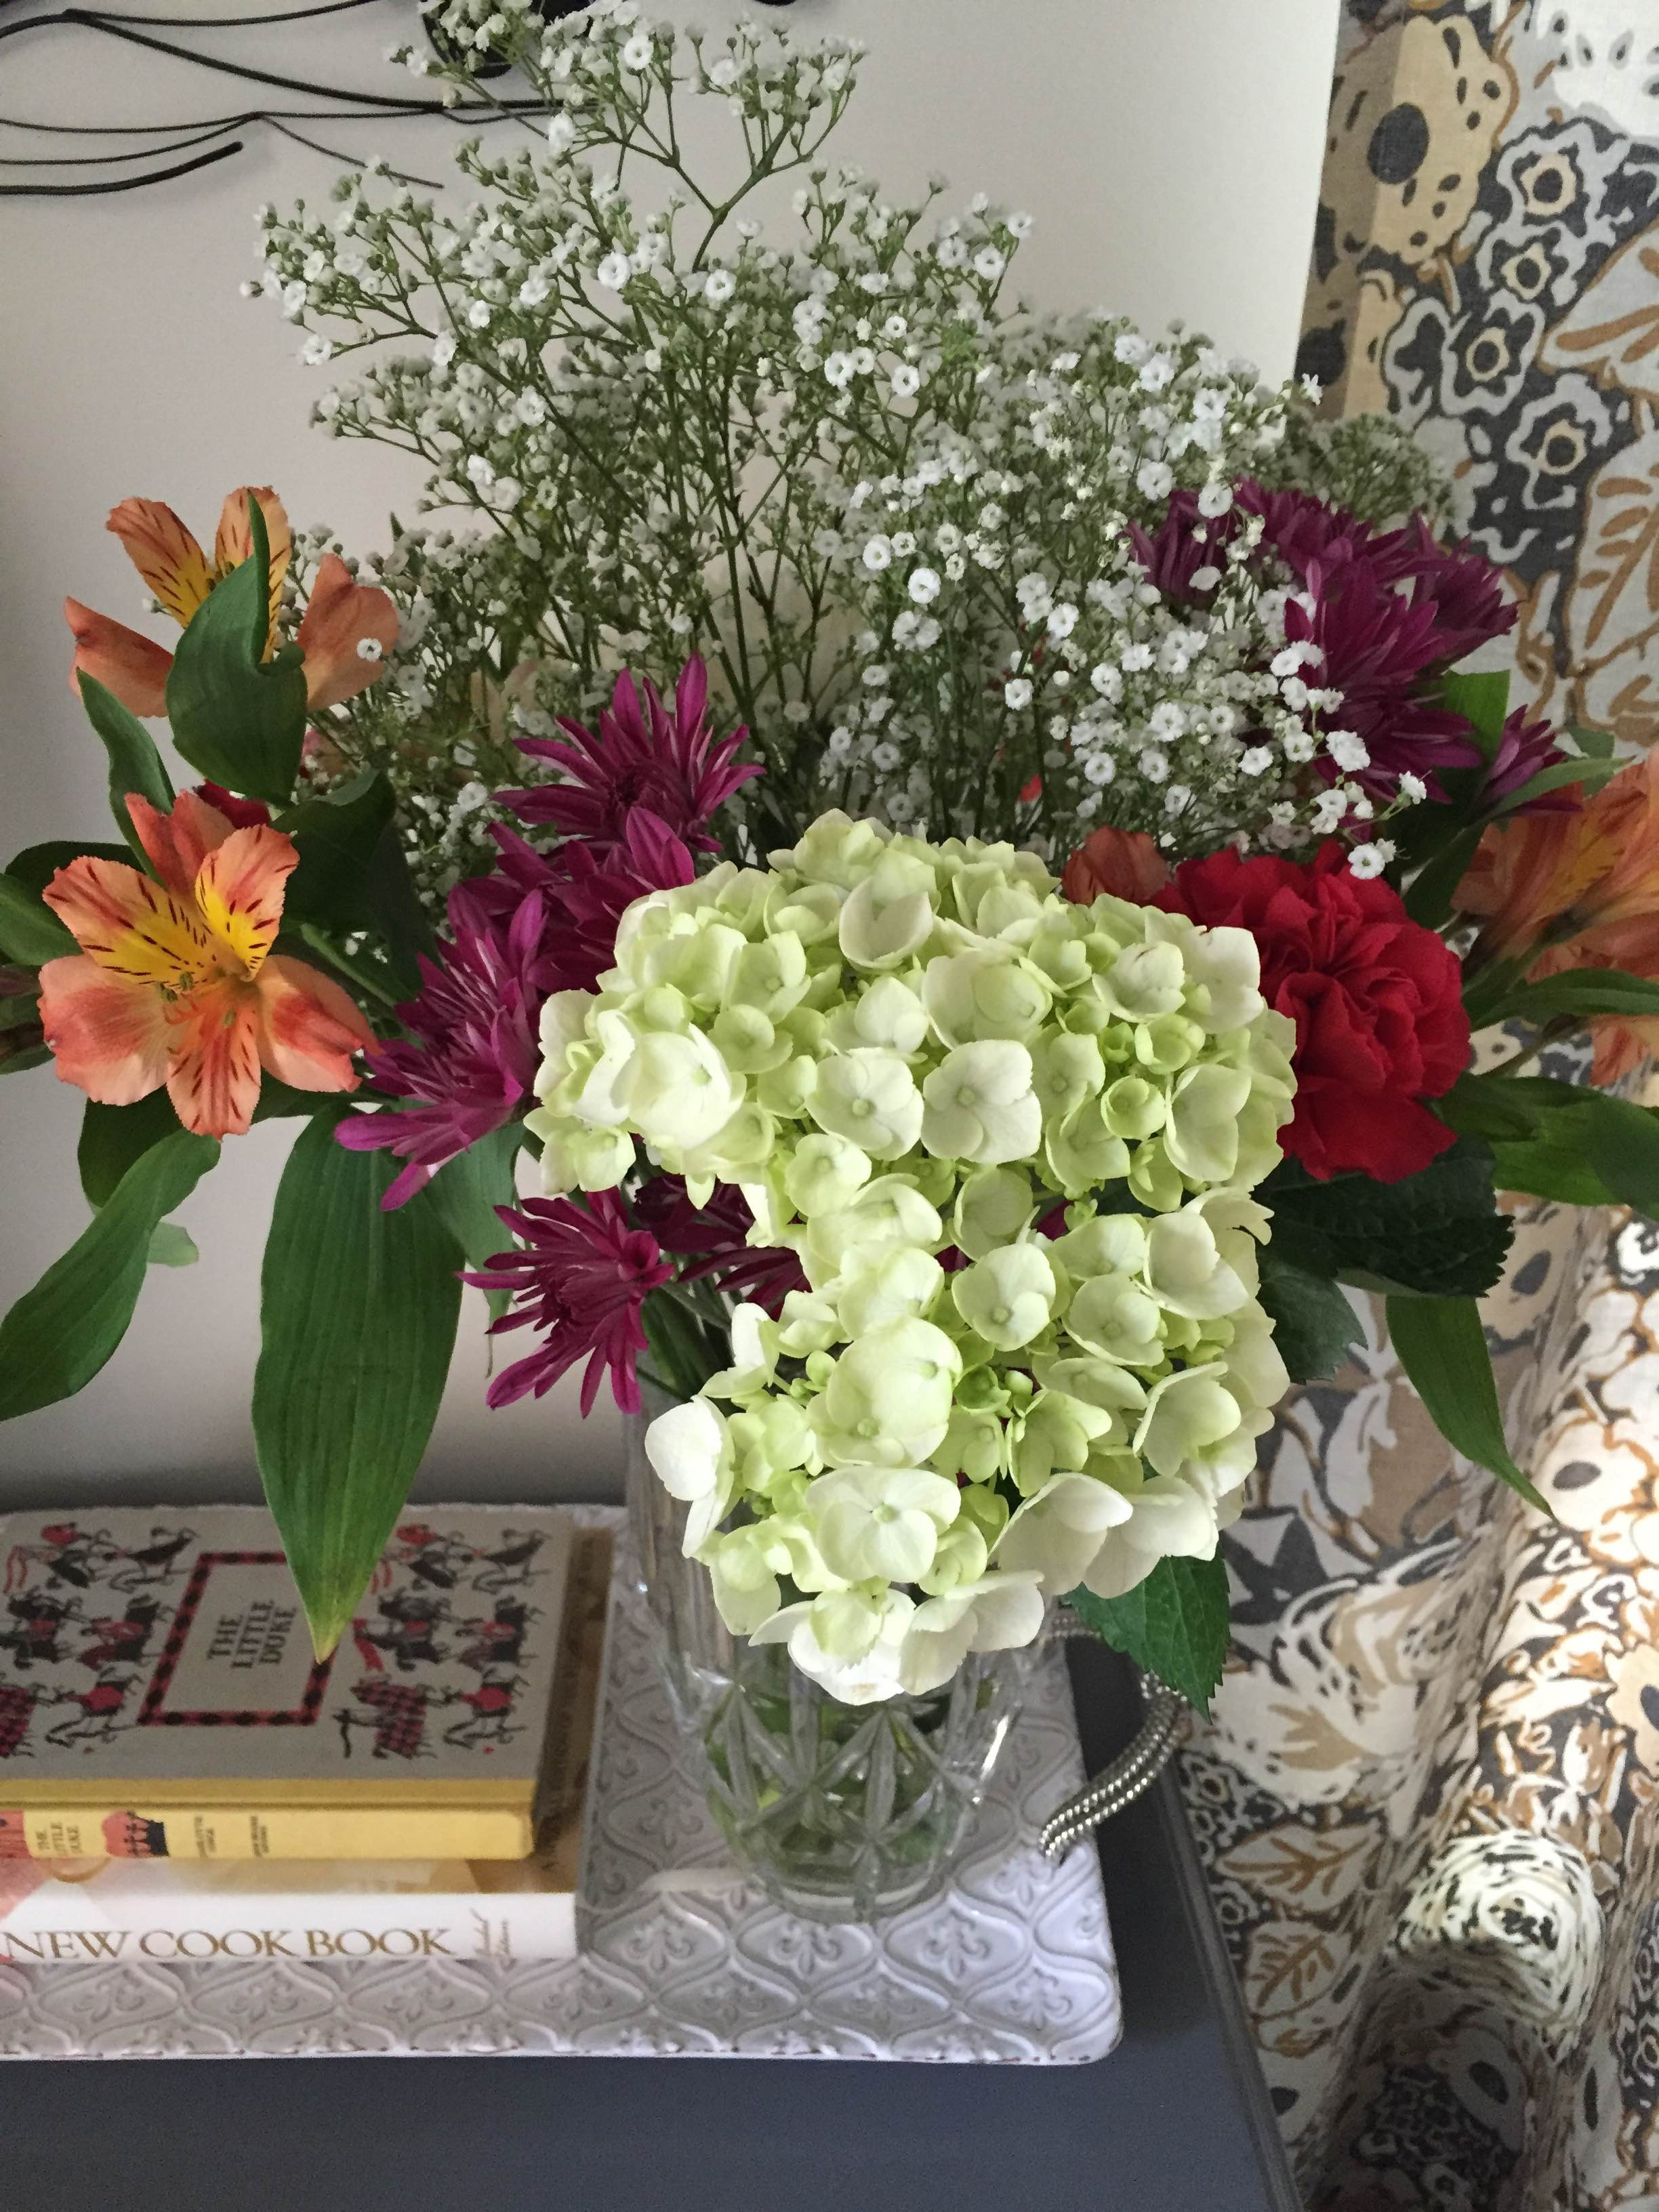 About halfway through the summer, Matt knew I needed some cheering up and flowers are always a win. :)